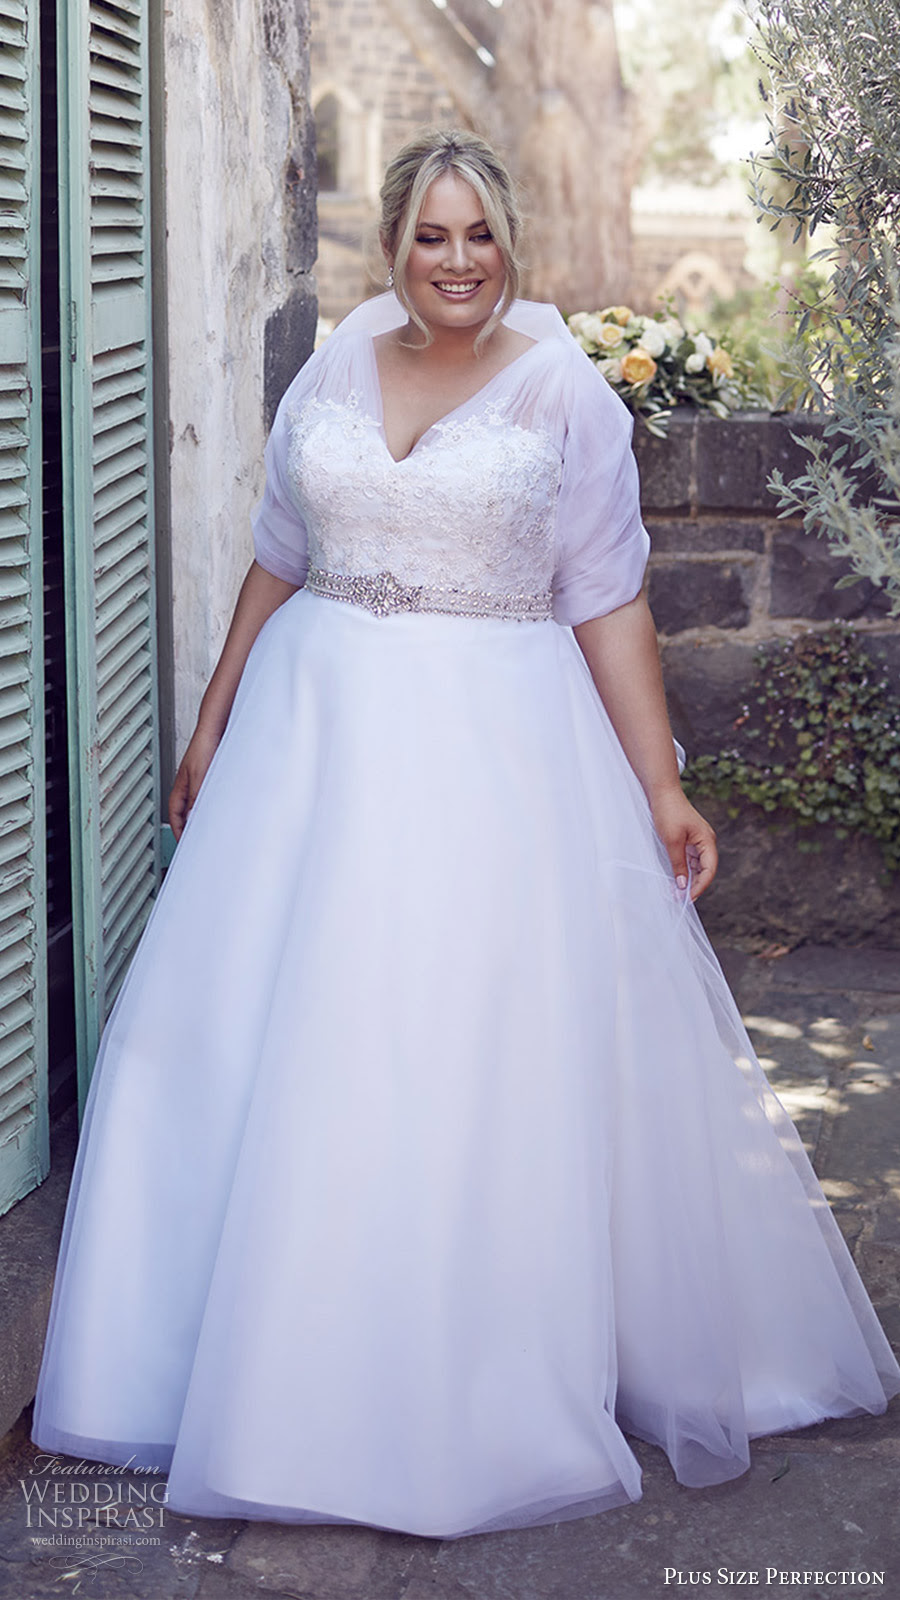 "plus size perfection wedding dresses — ""it's a love story"